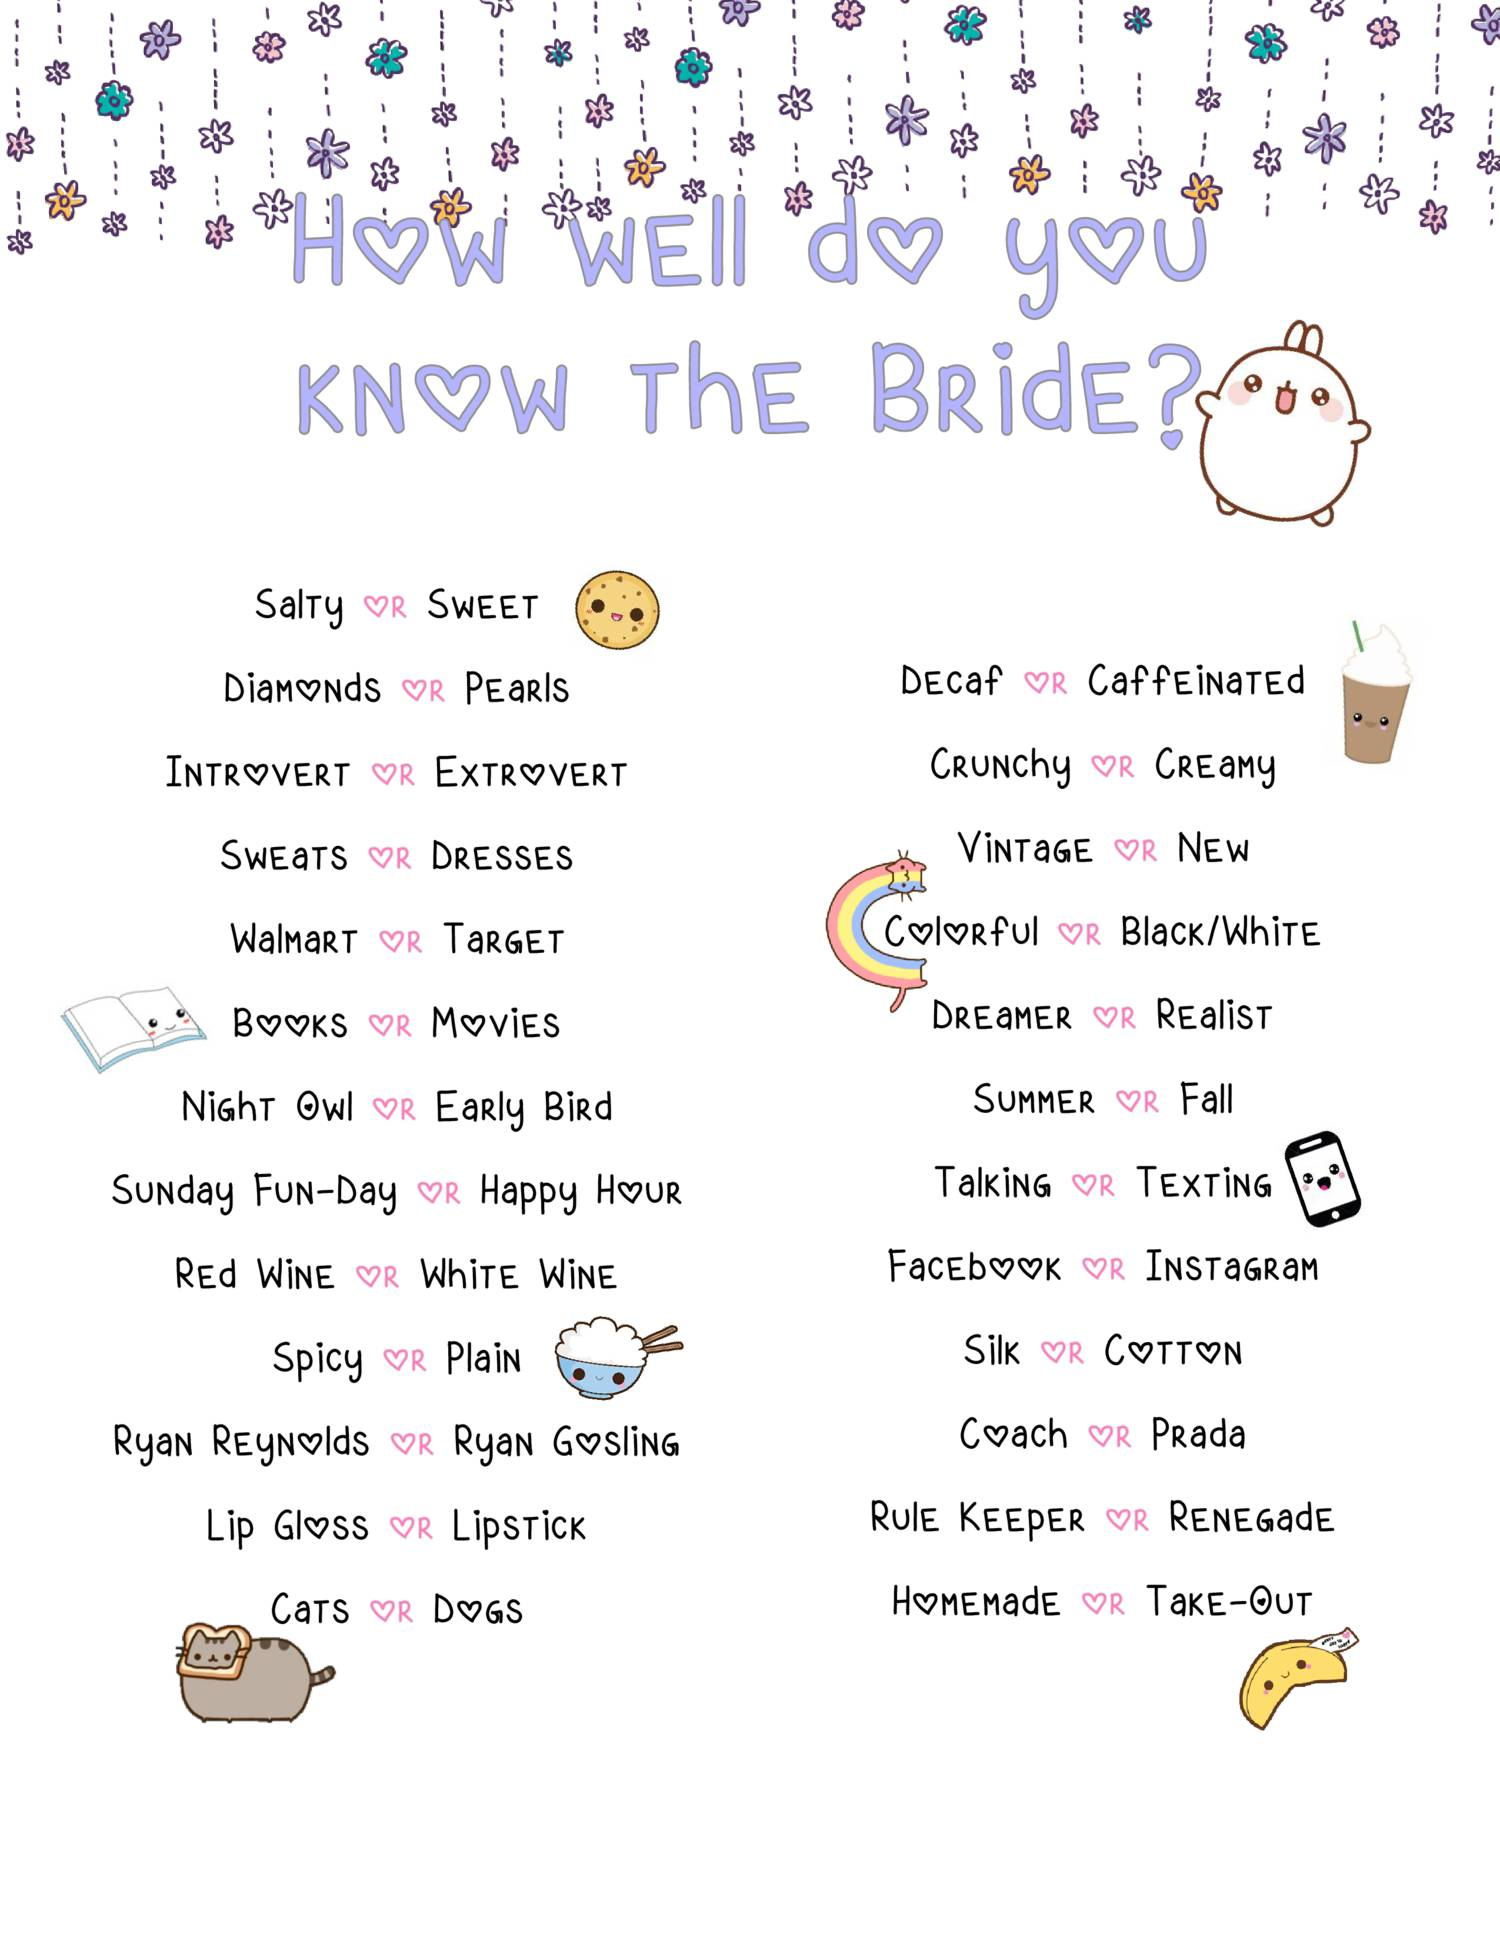 How Well Do You Know The Bride.pdf - DocDroid - photo#14